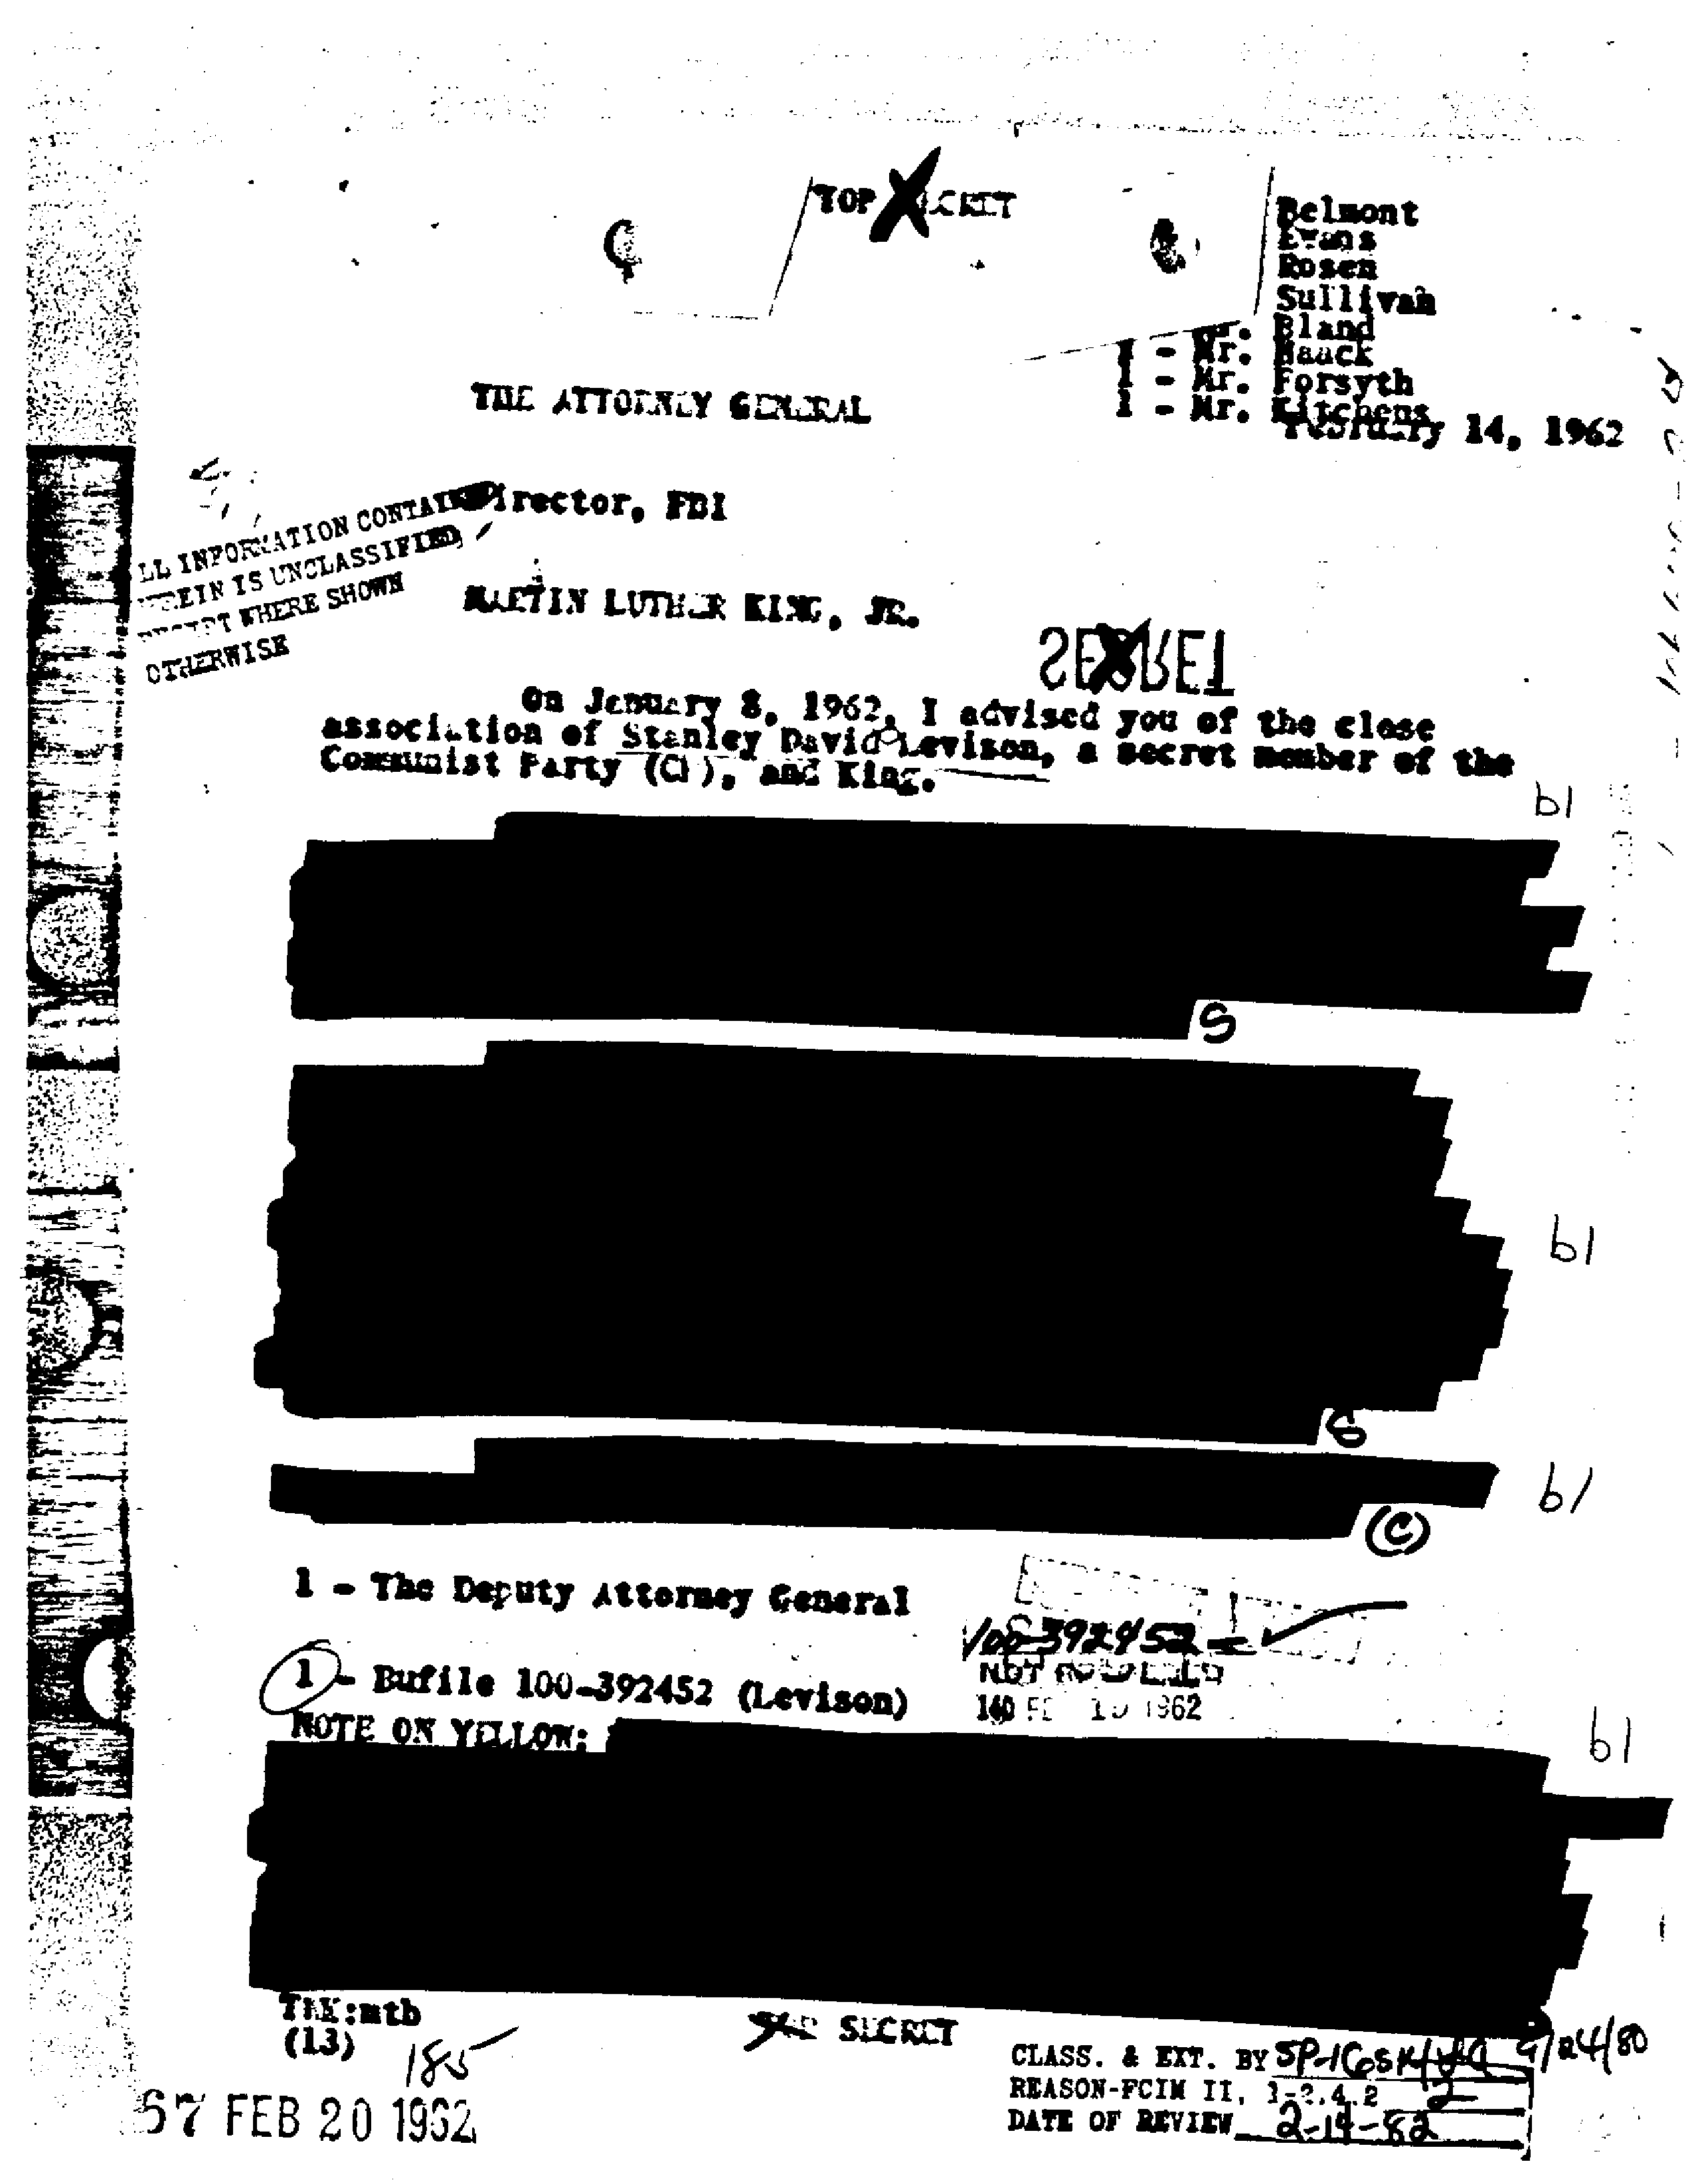 1962 memo from the FBI Director to the Attorney General concerning Dr. King. This heavily redacted page was originally provided to Branch by the FBI.